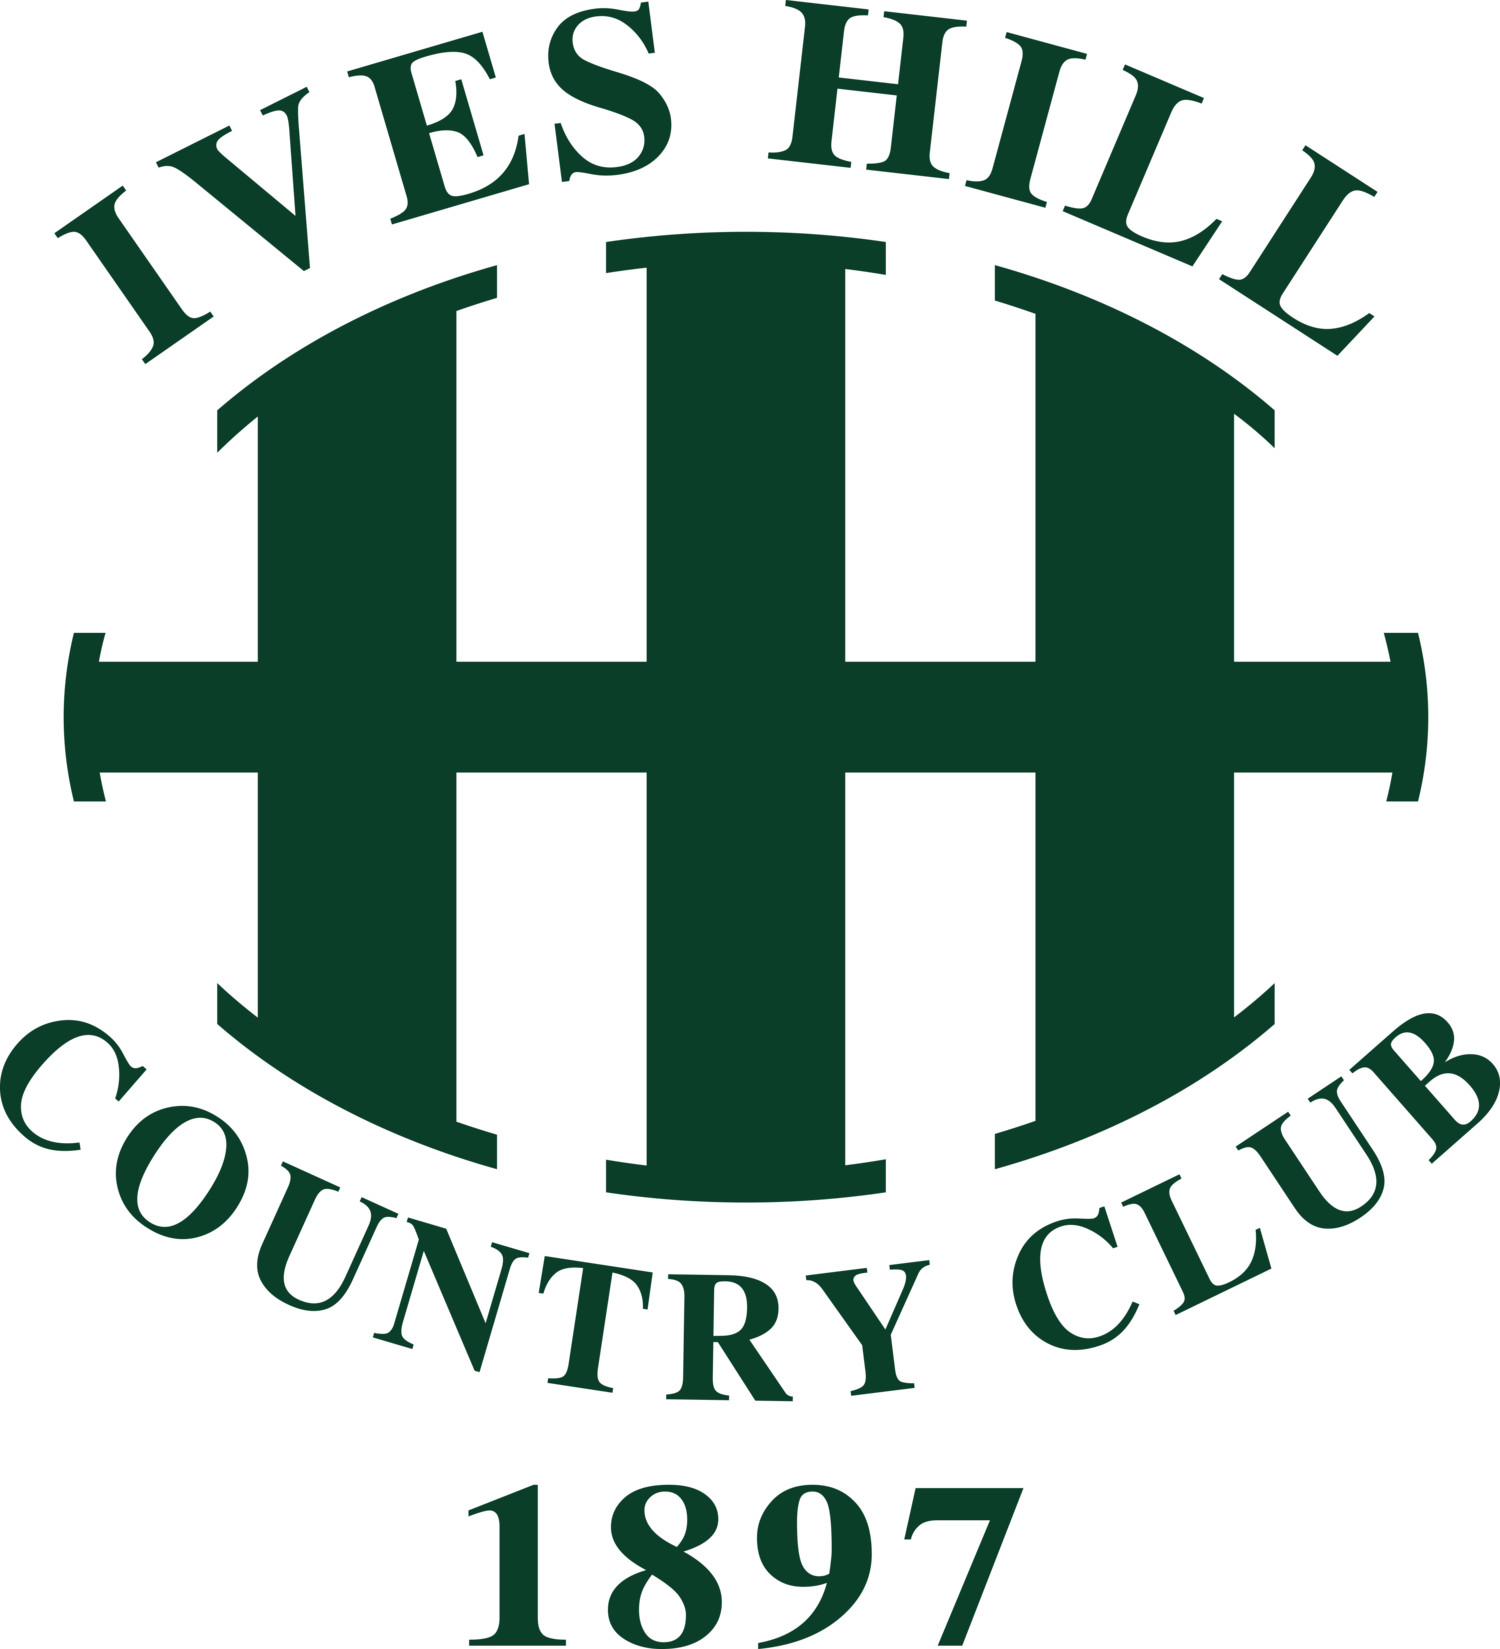 Ives Hill Country Club | Watertown Golf Course